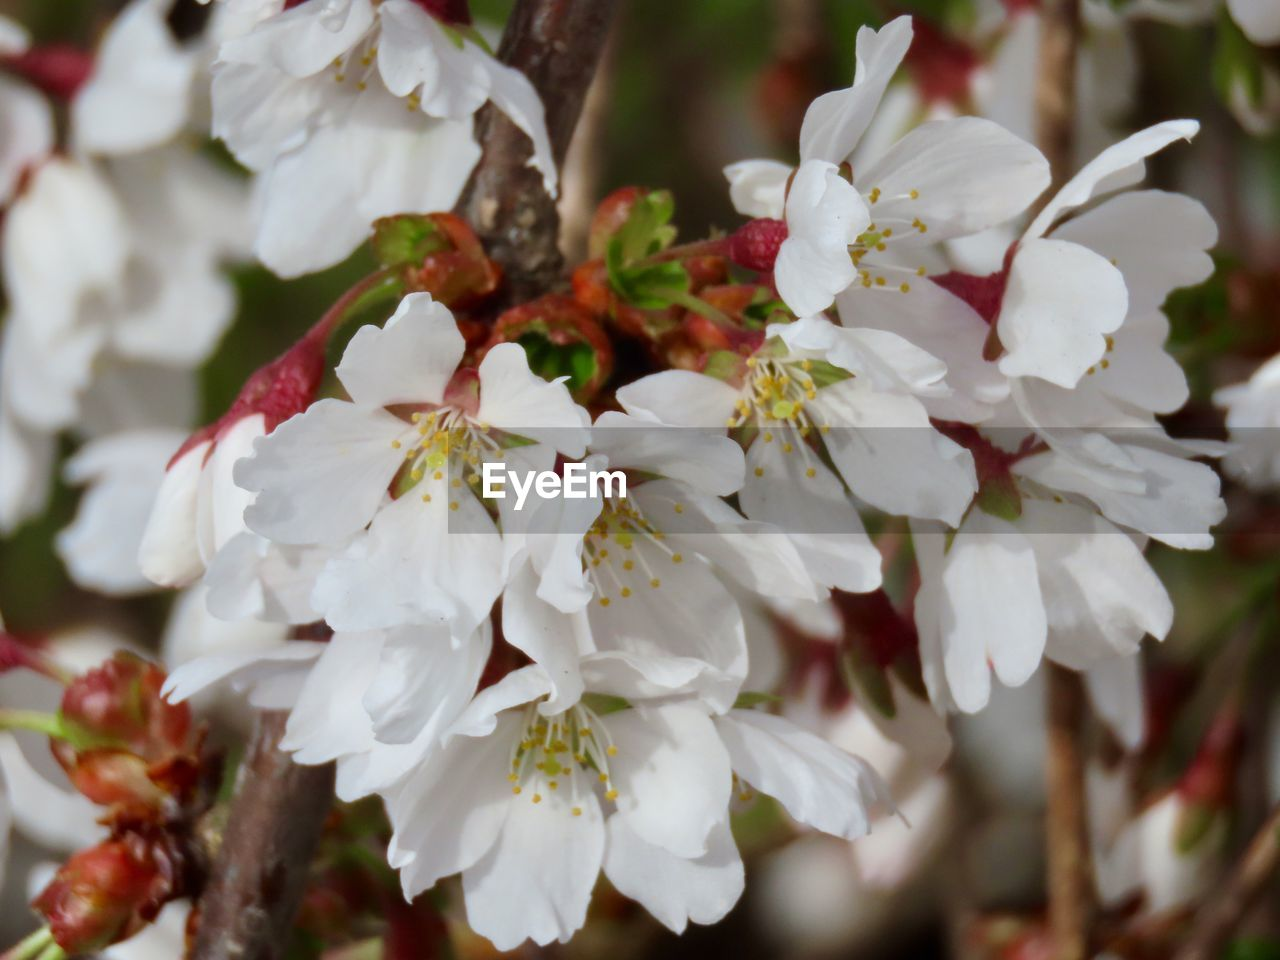 flower, flowering plant, plant, growth, freshness, beauty in nature, petal, fragility, vulnerability, white color, close-up, flower head, inflorescence, focus on foreground, no people, nature, blossom, day, pollen, outdoors, springtime, cherry blossom, bunch of flowers, spring